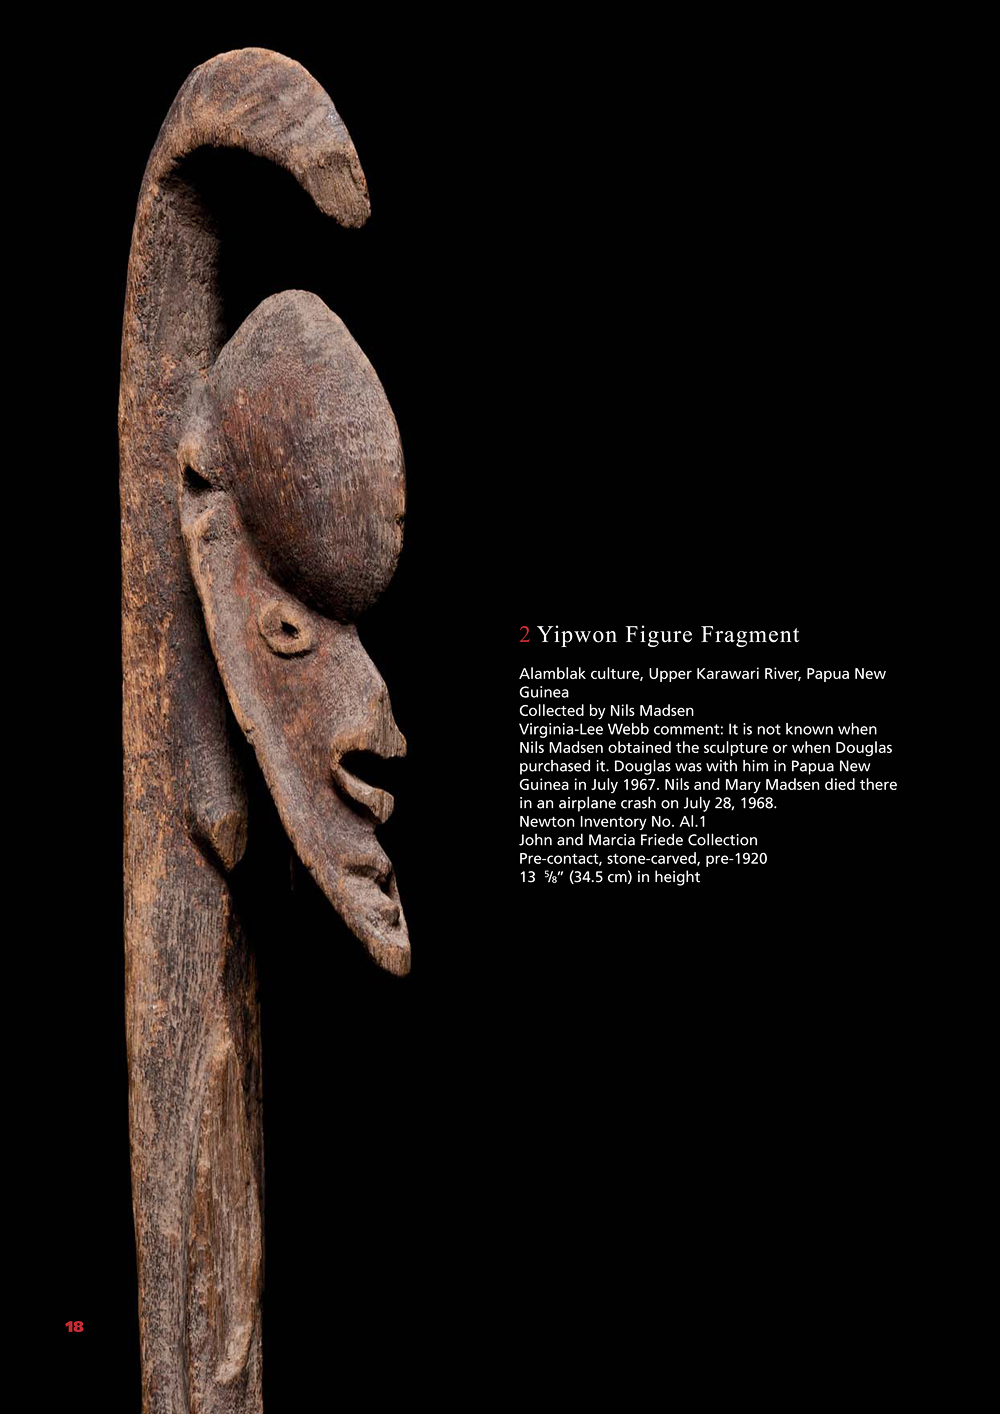 Michael Hamson Publications | Collecting New Guinea Art: Douglas Newton, Harry Beran, Thomas Schultze-Westrum